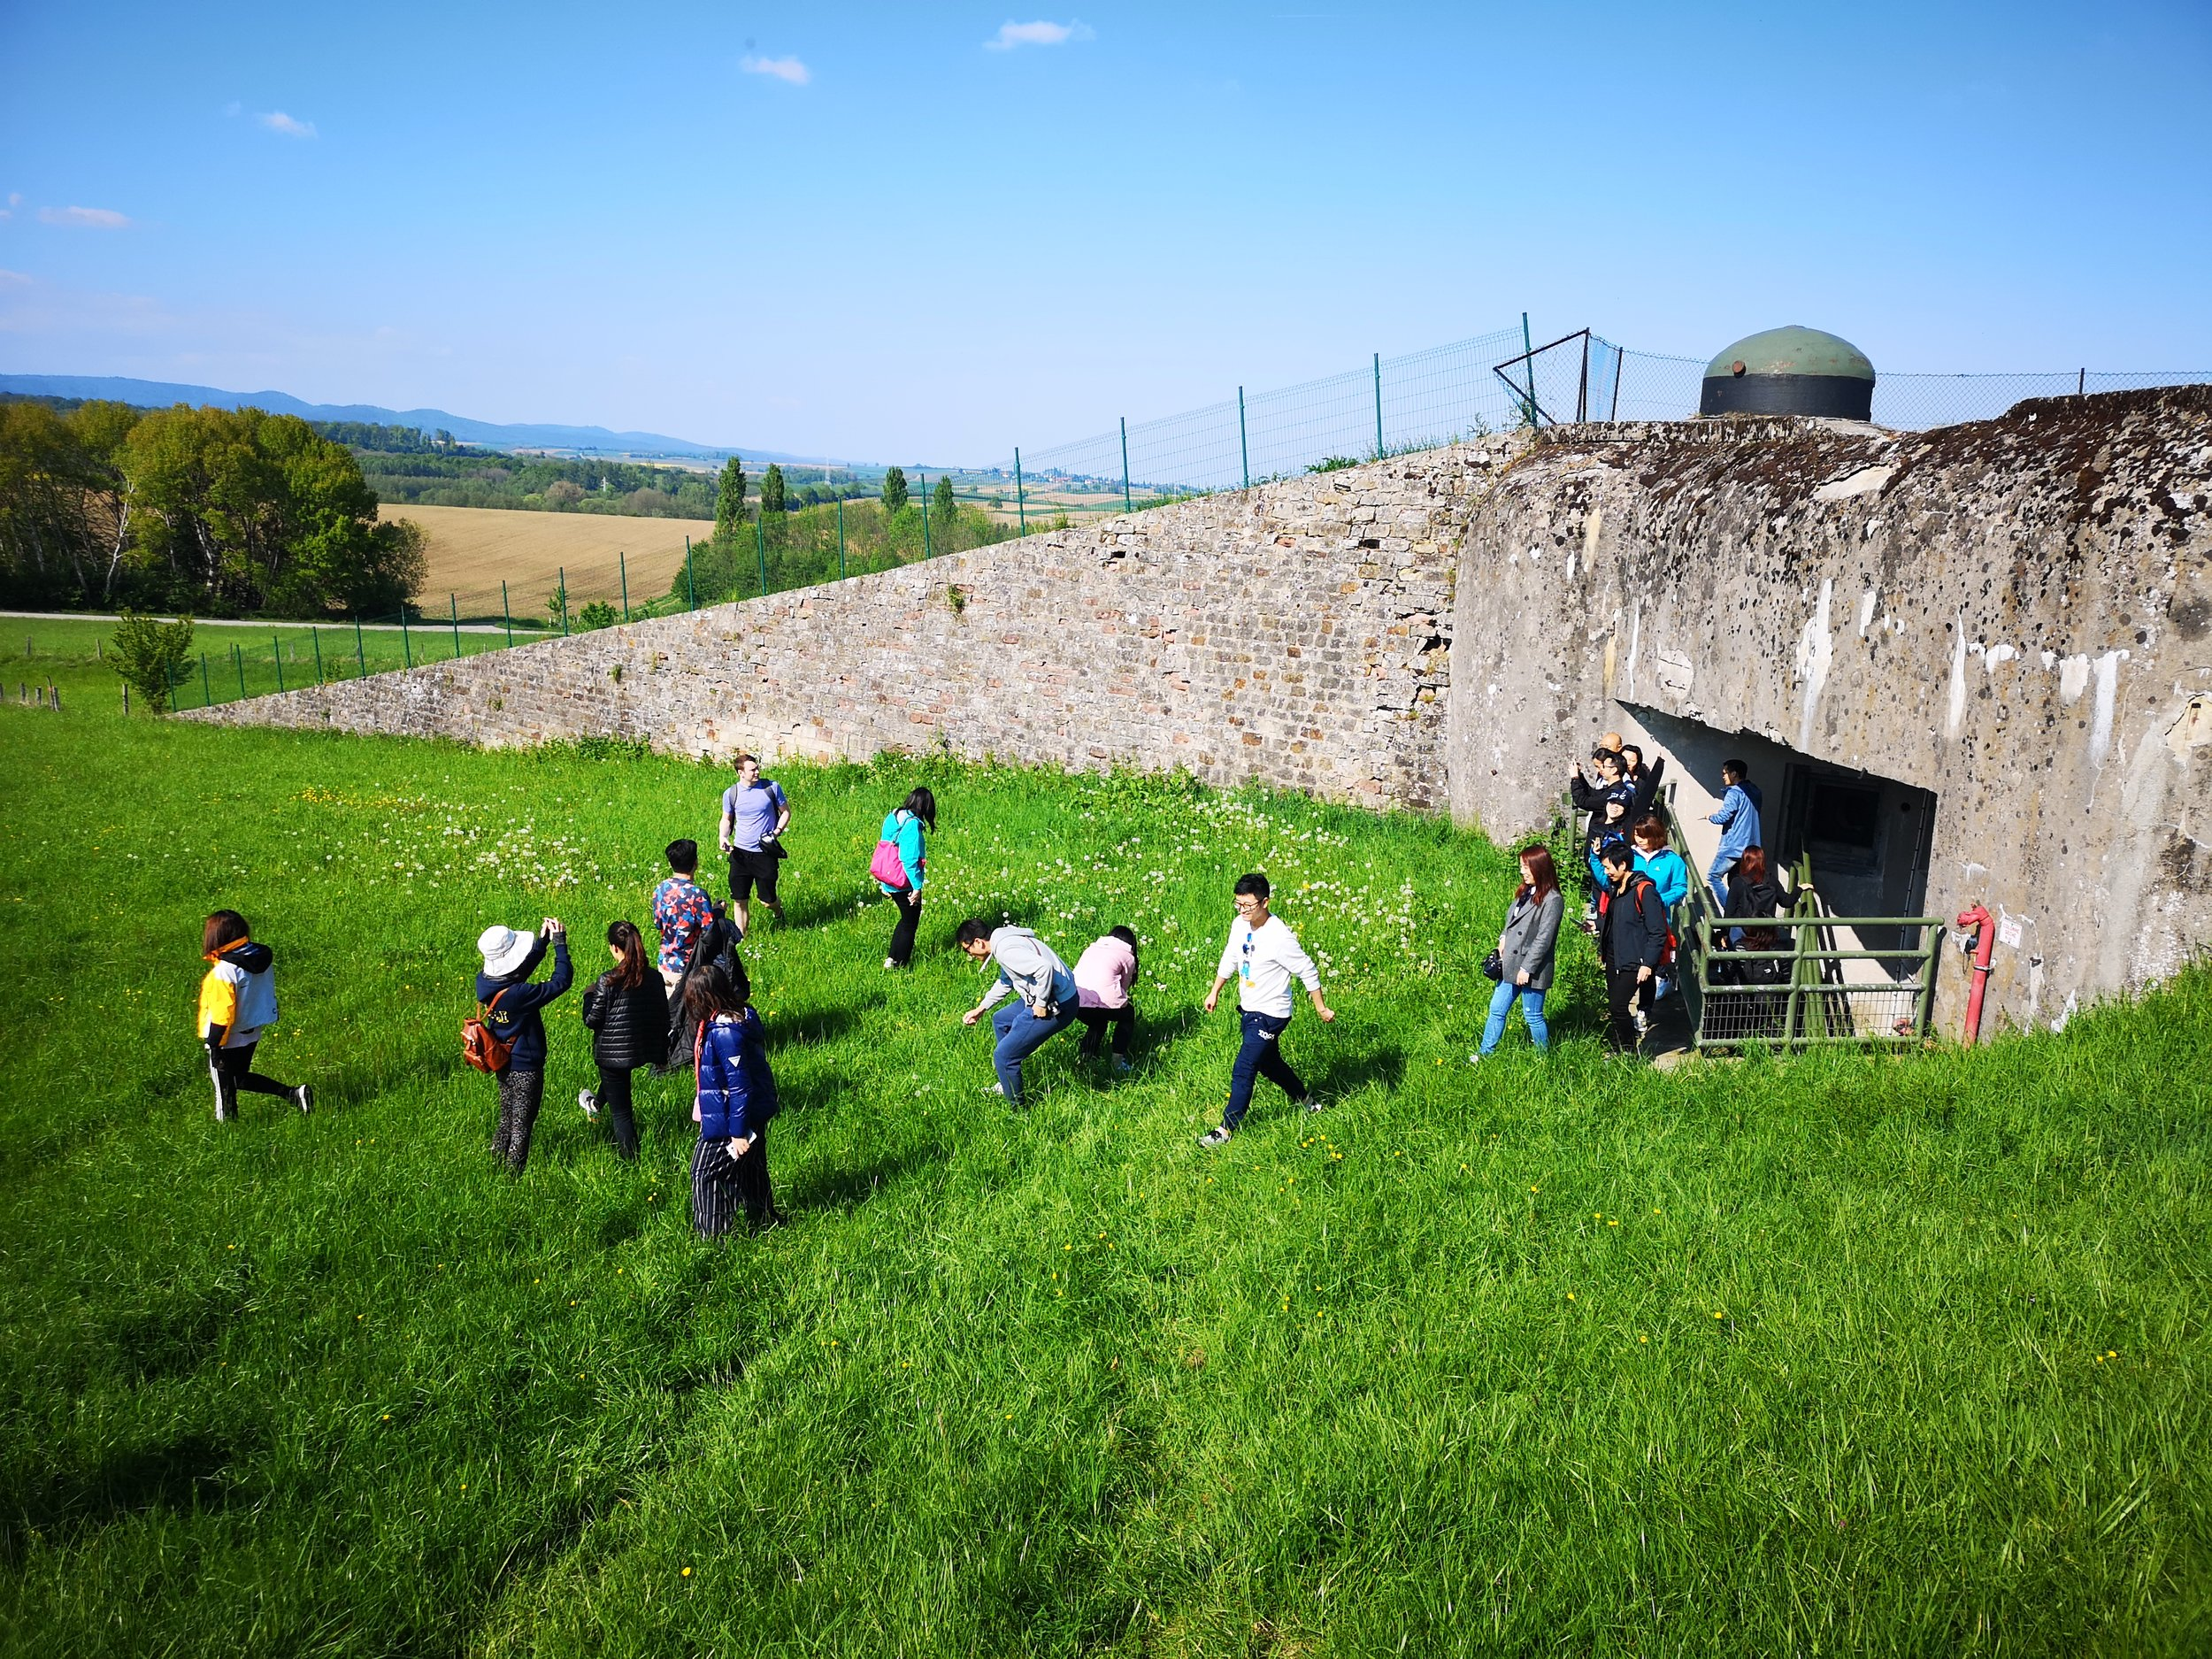 Students exiting an infantry combat stand at Ligne Maginot after an underground hike (photo with permission).